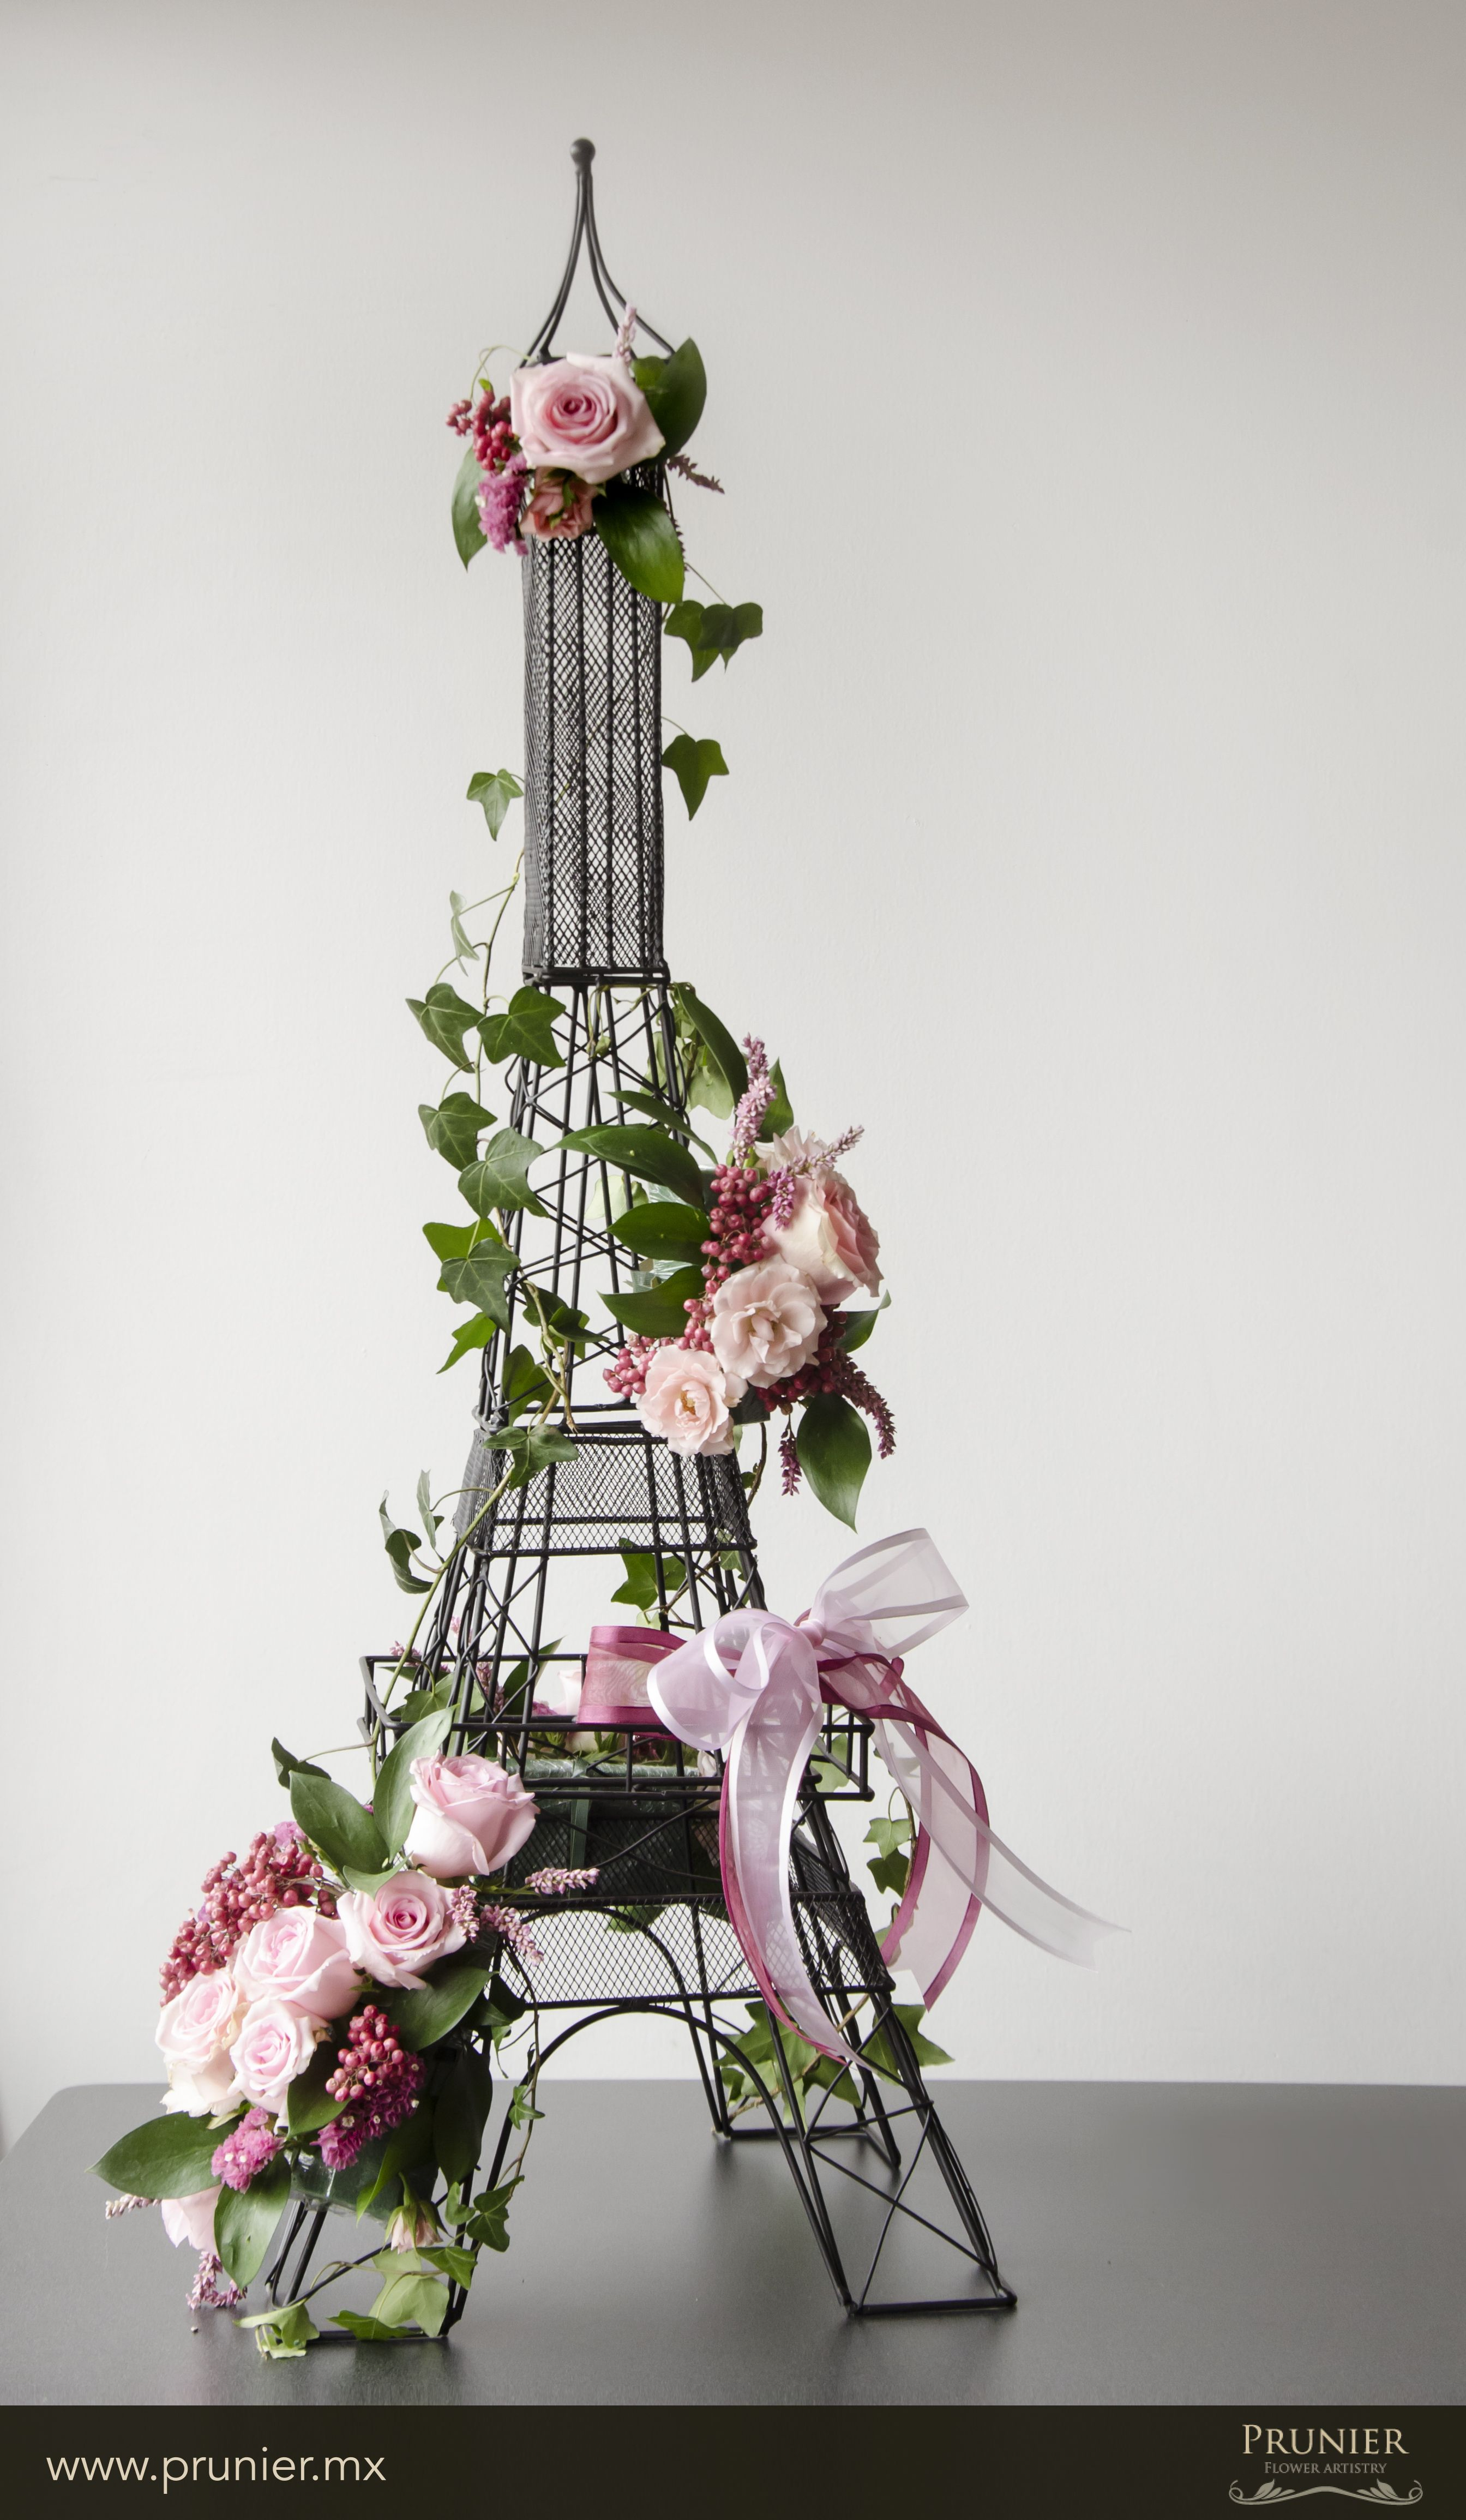 Pin De Prunier En Paris Flower Arrangements